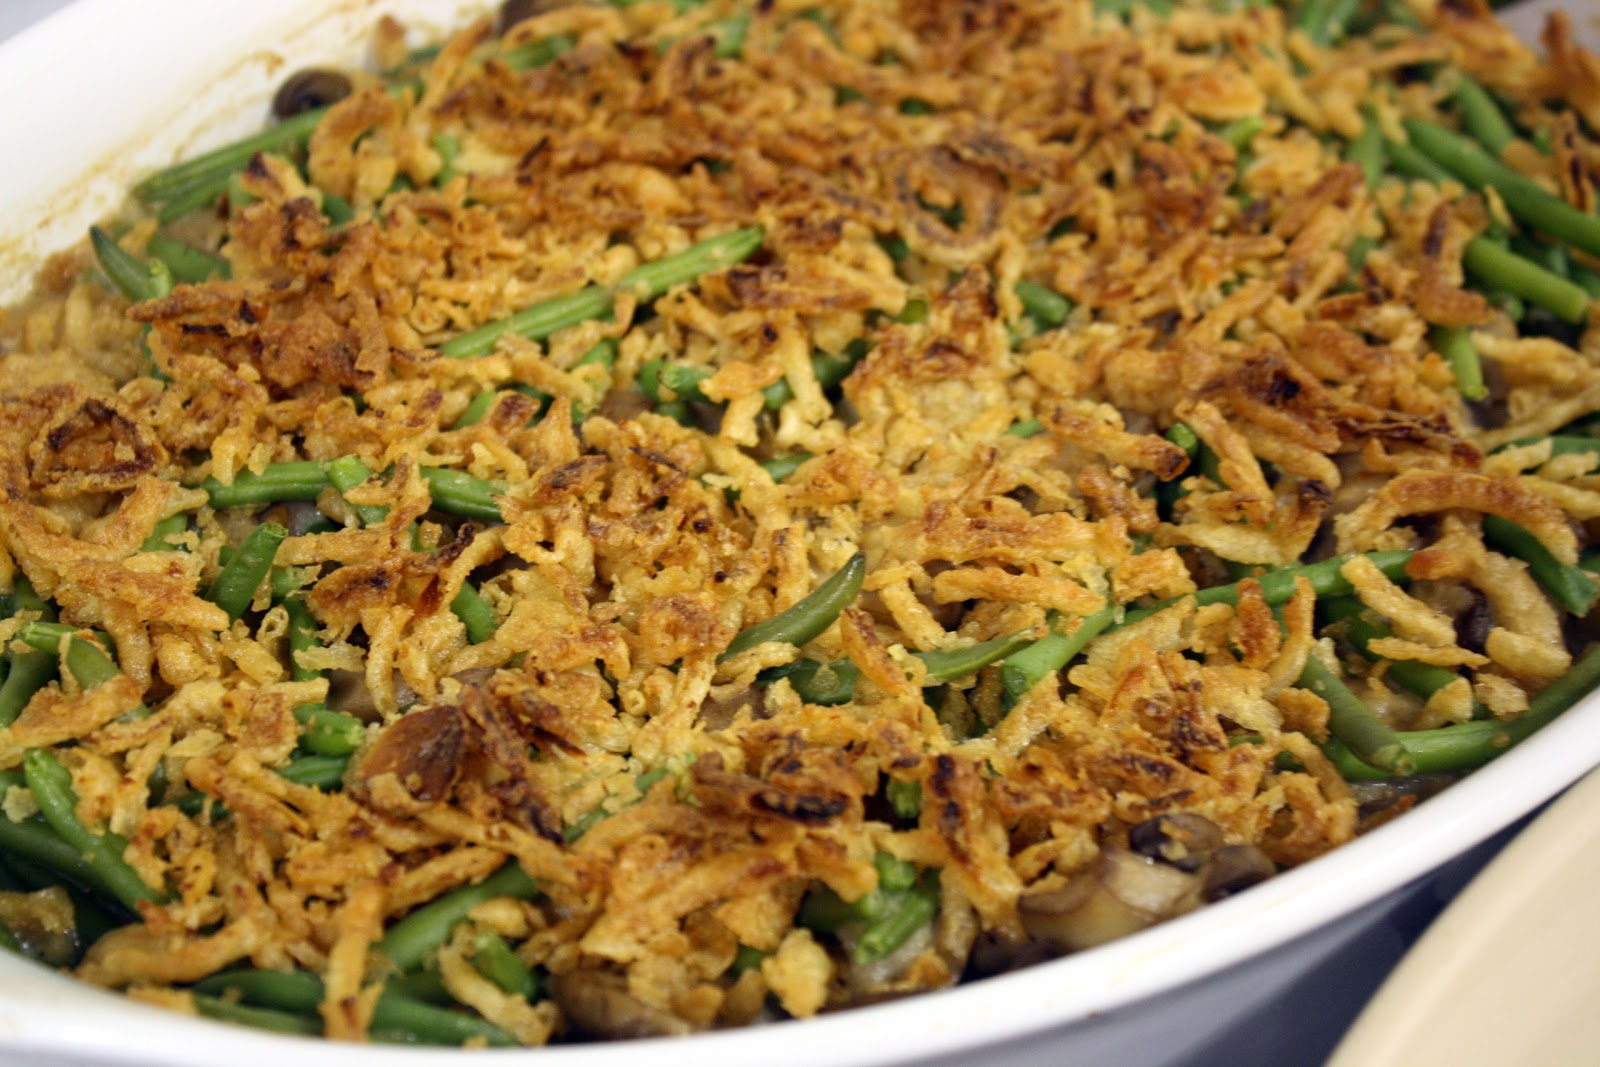 Green+Bean+Casserole+Post-Bake1.jpg